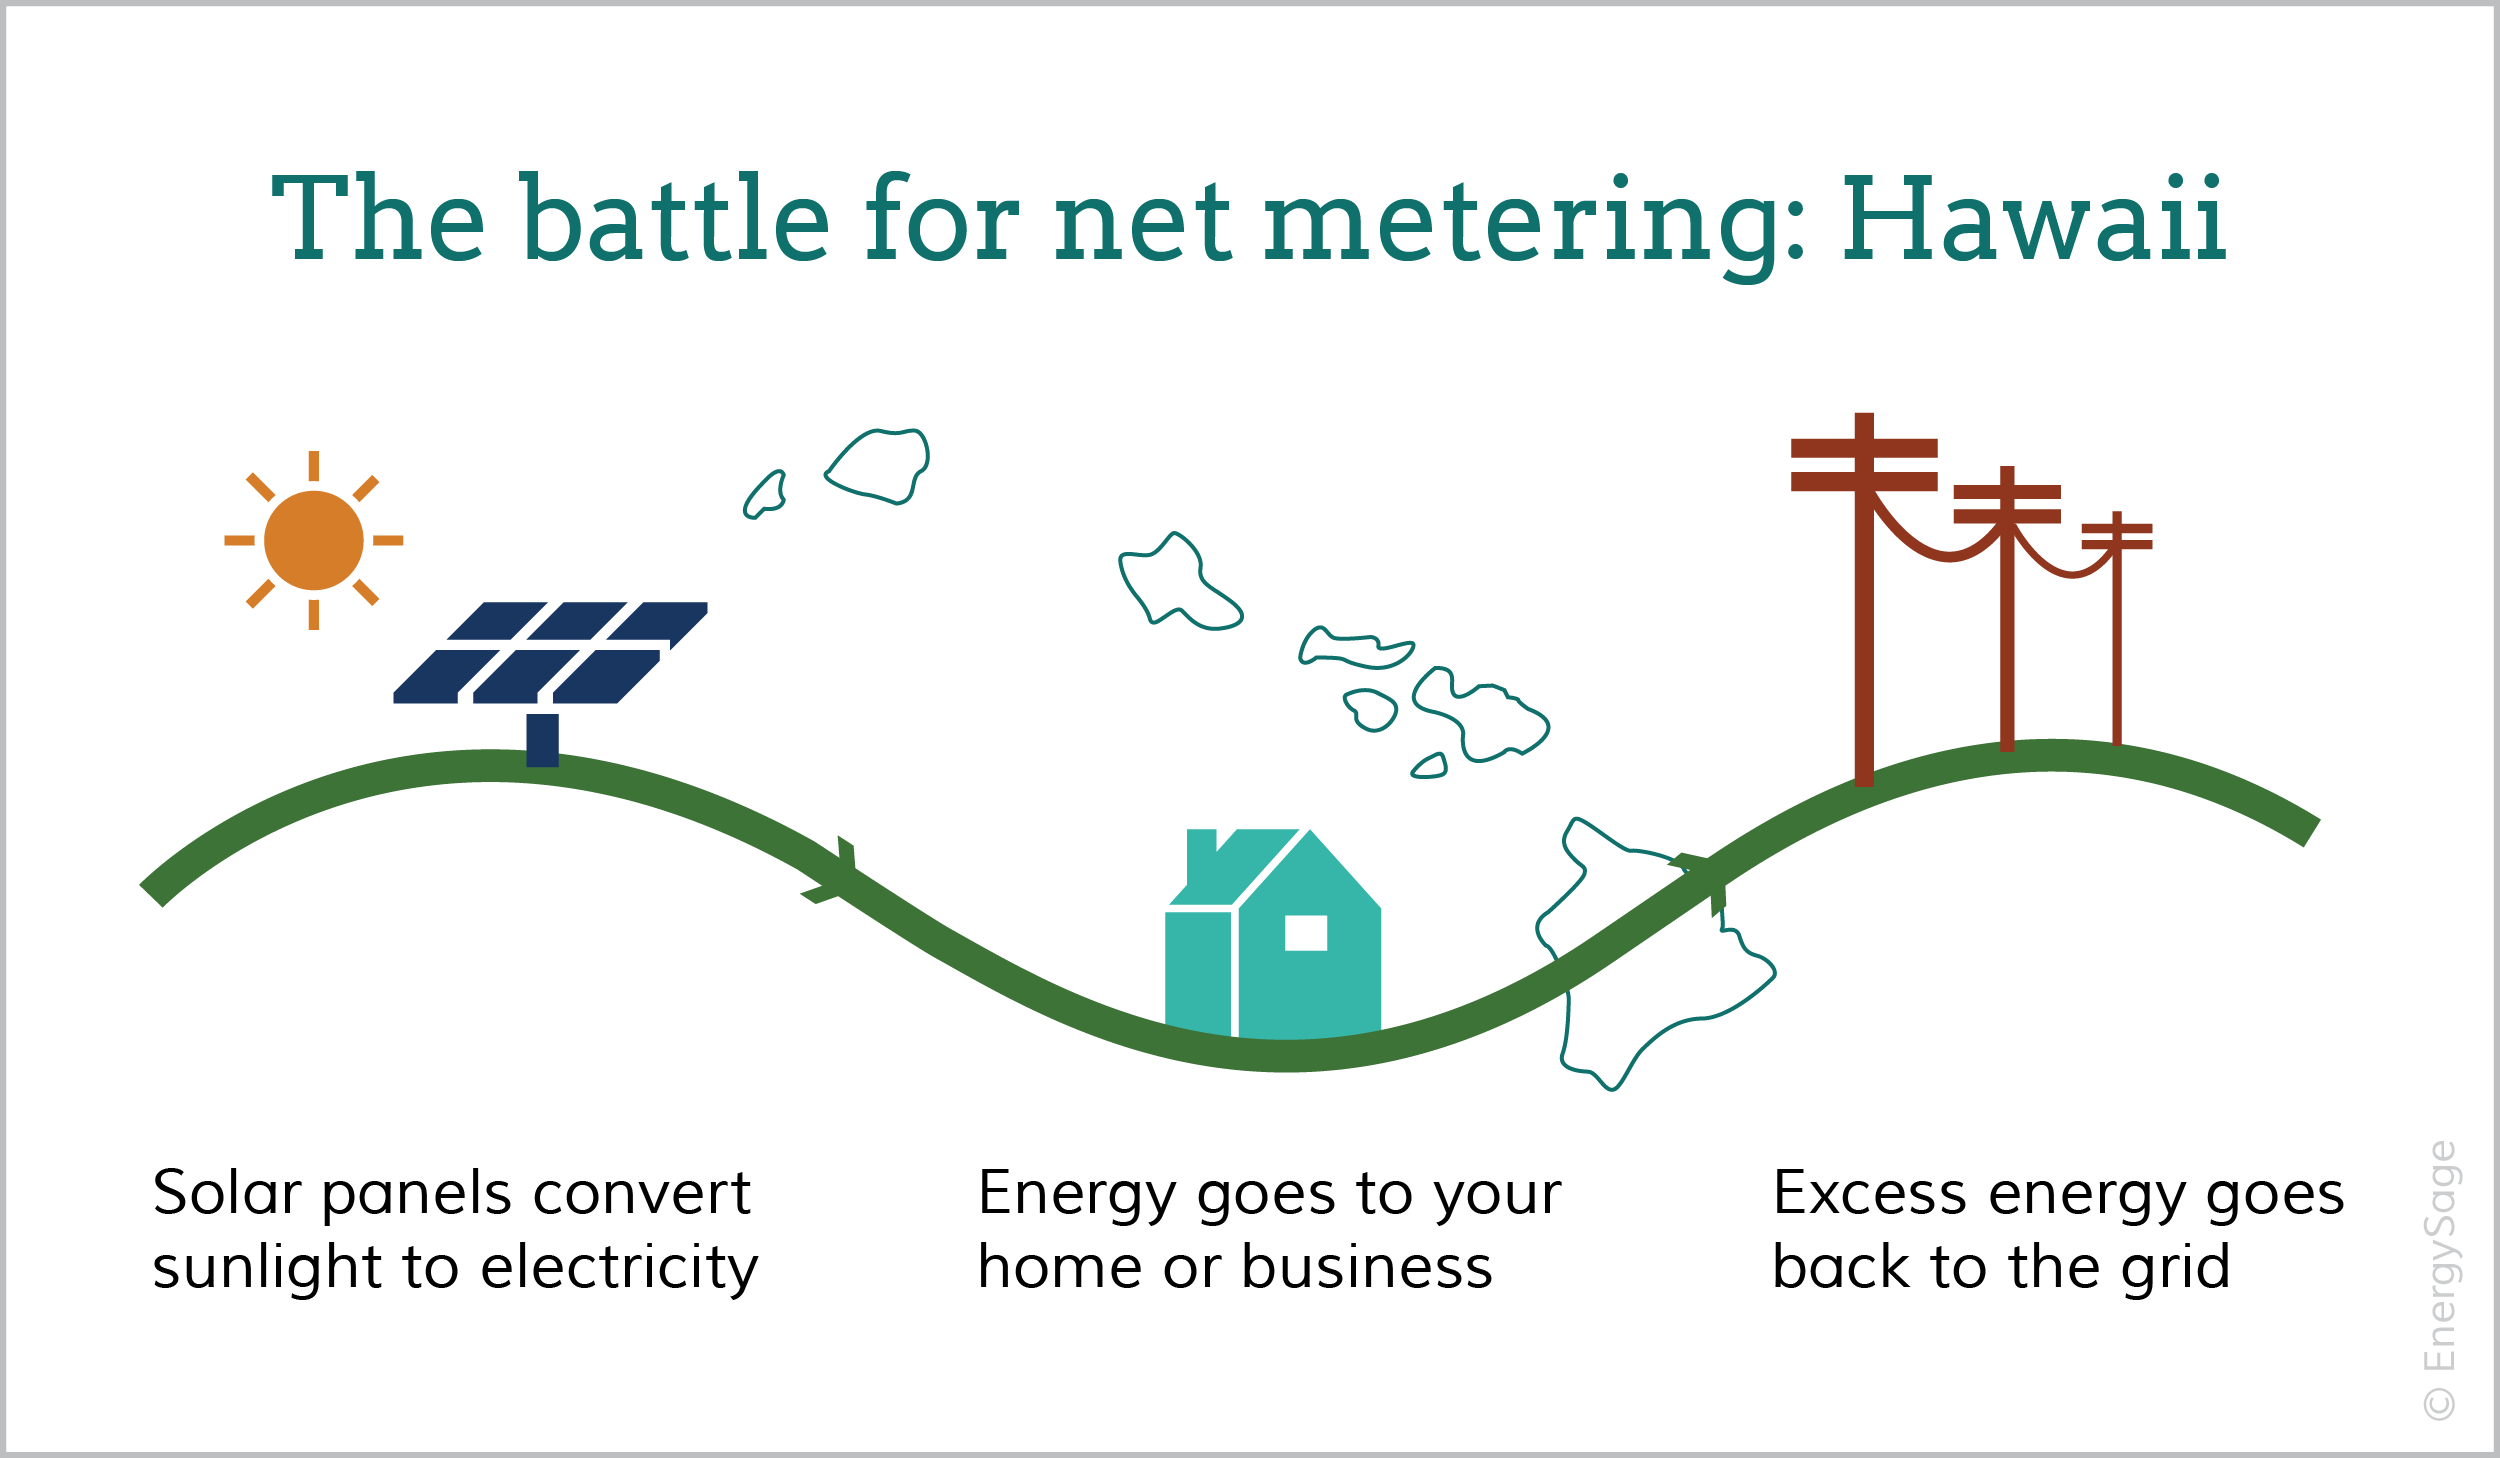 Net metering Hawaii